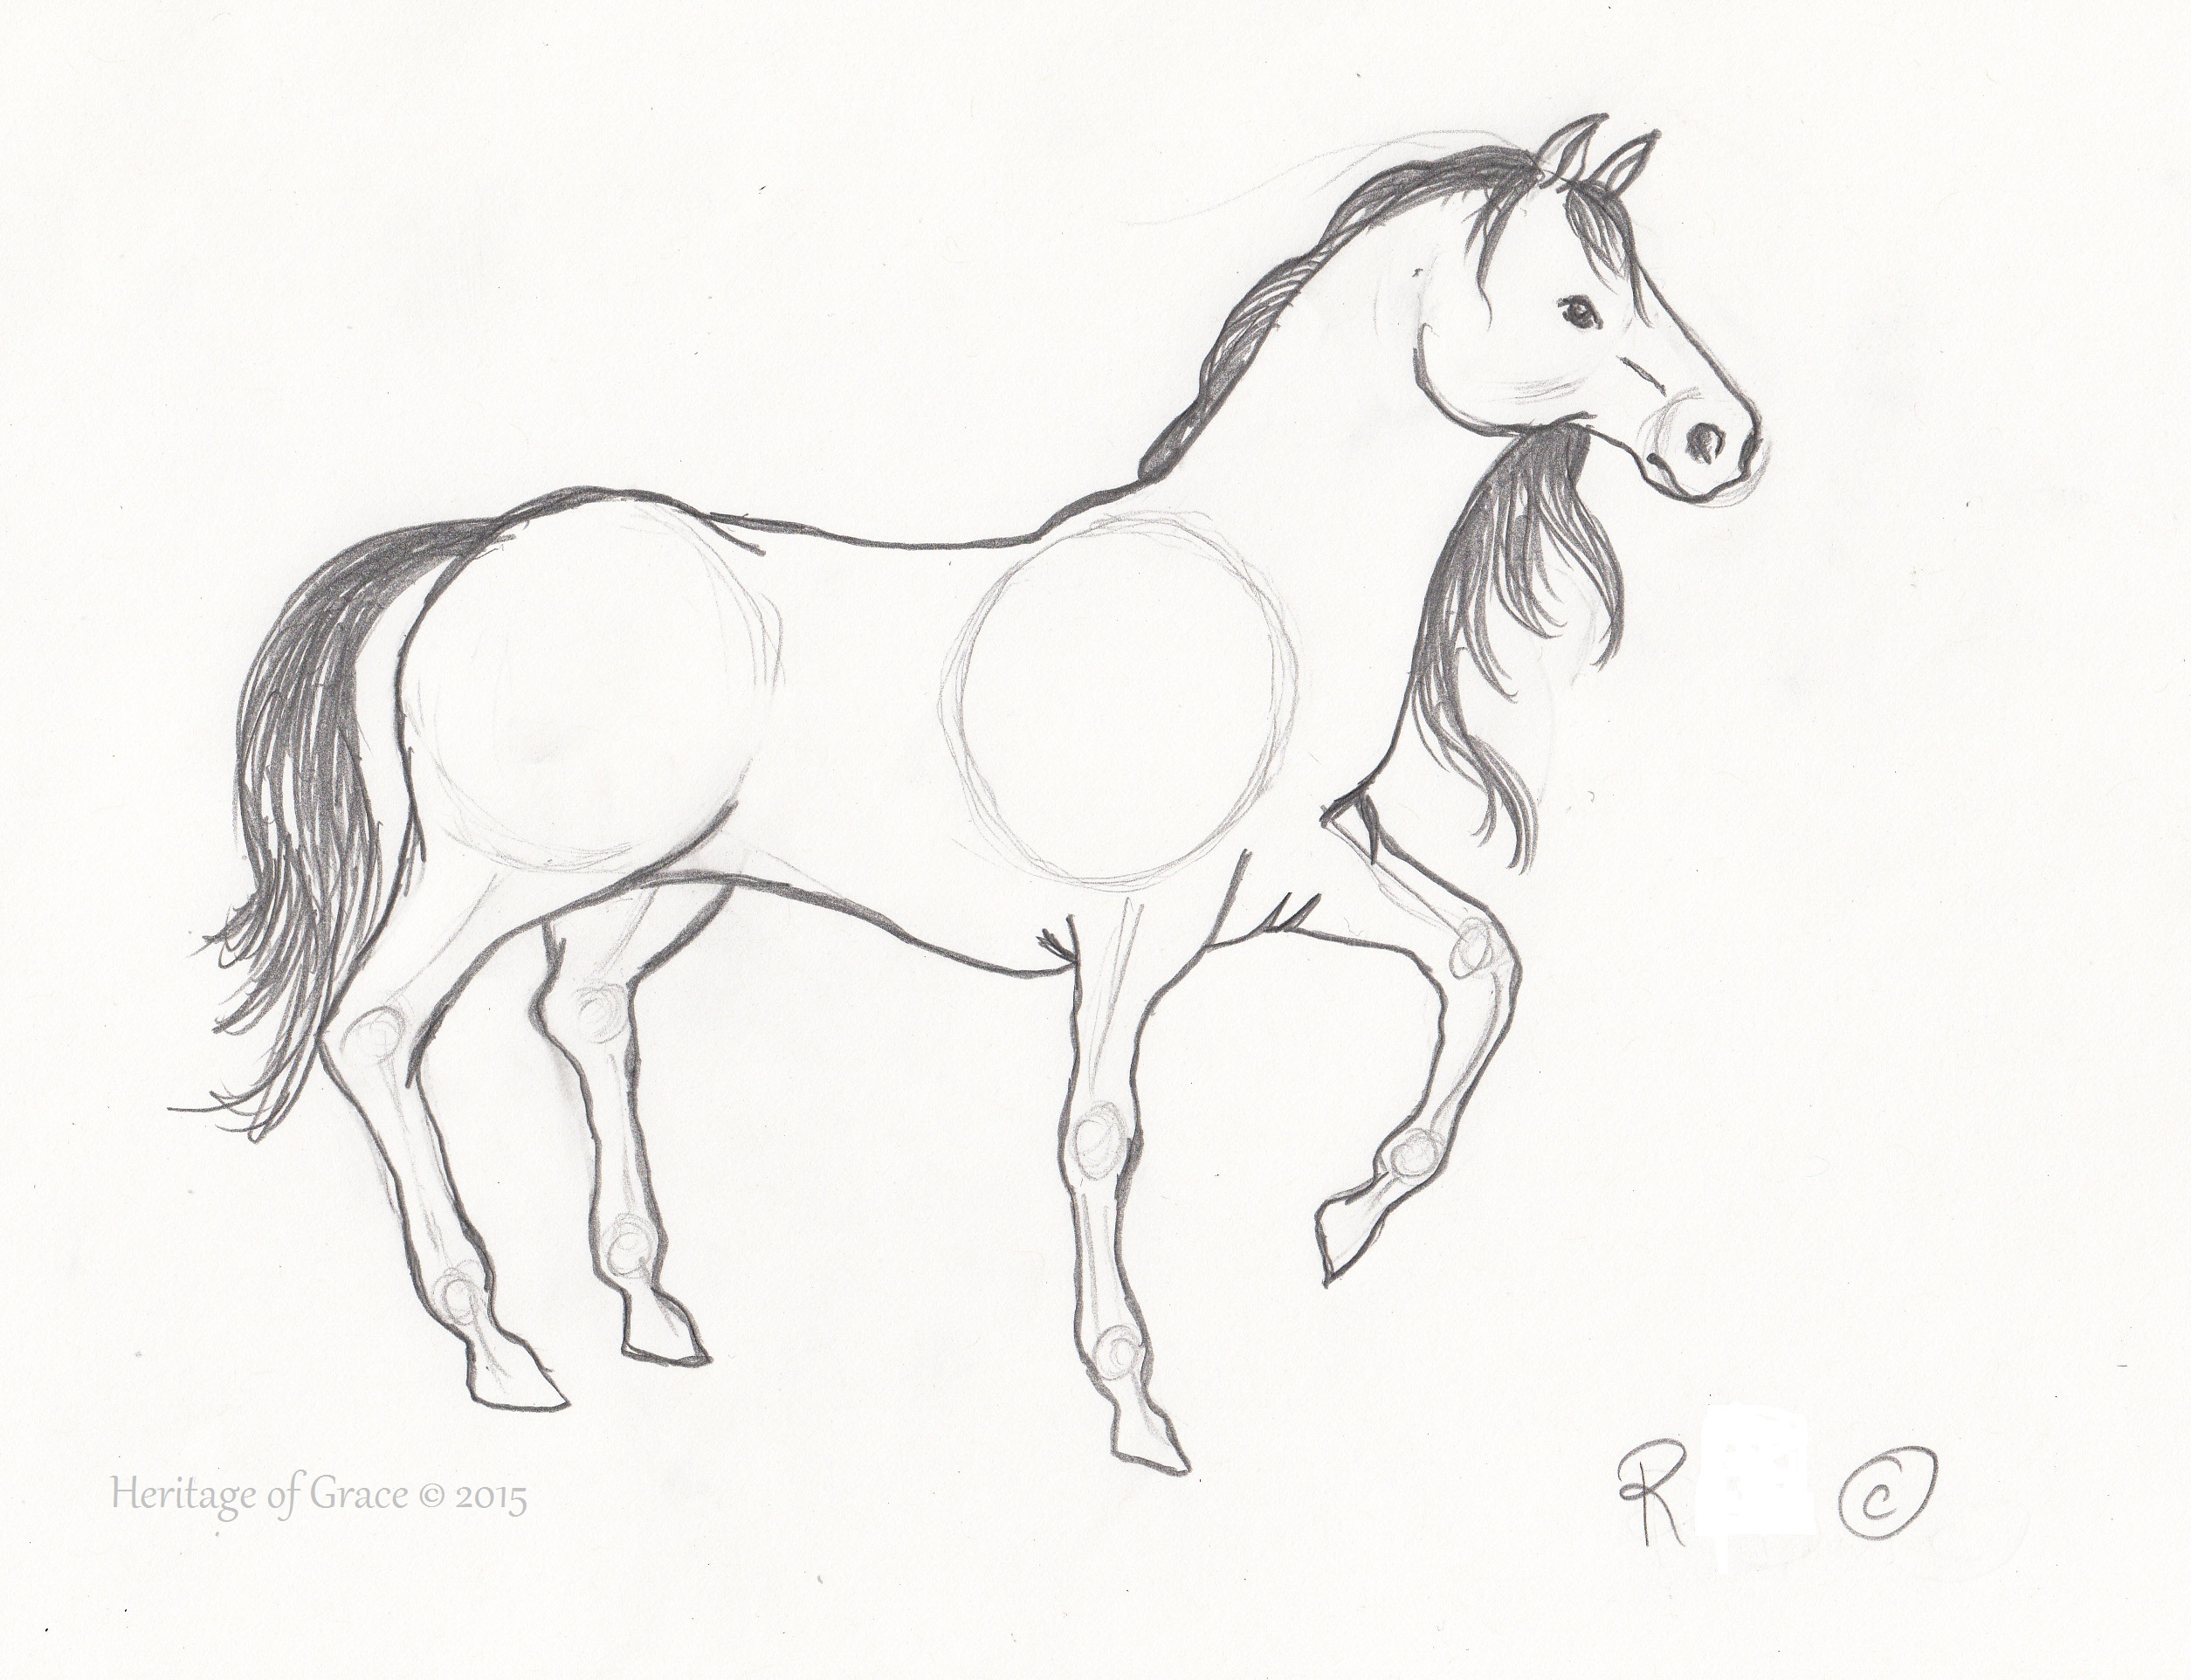 2509x1924 Pencil Sketches Of Horses And Angels Sketches Of Horse